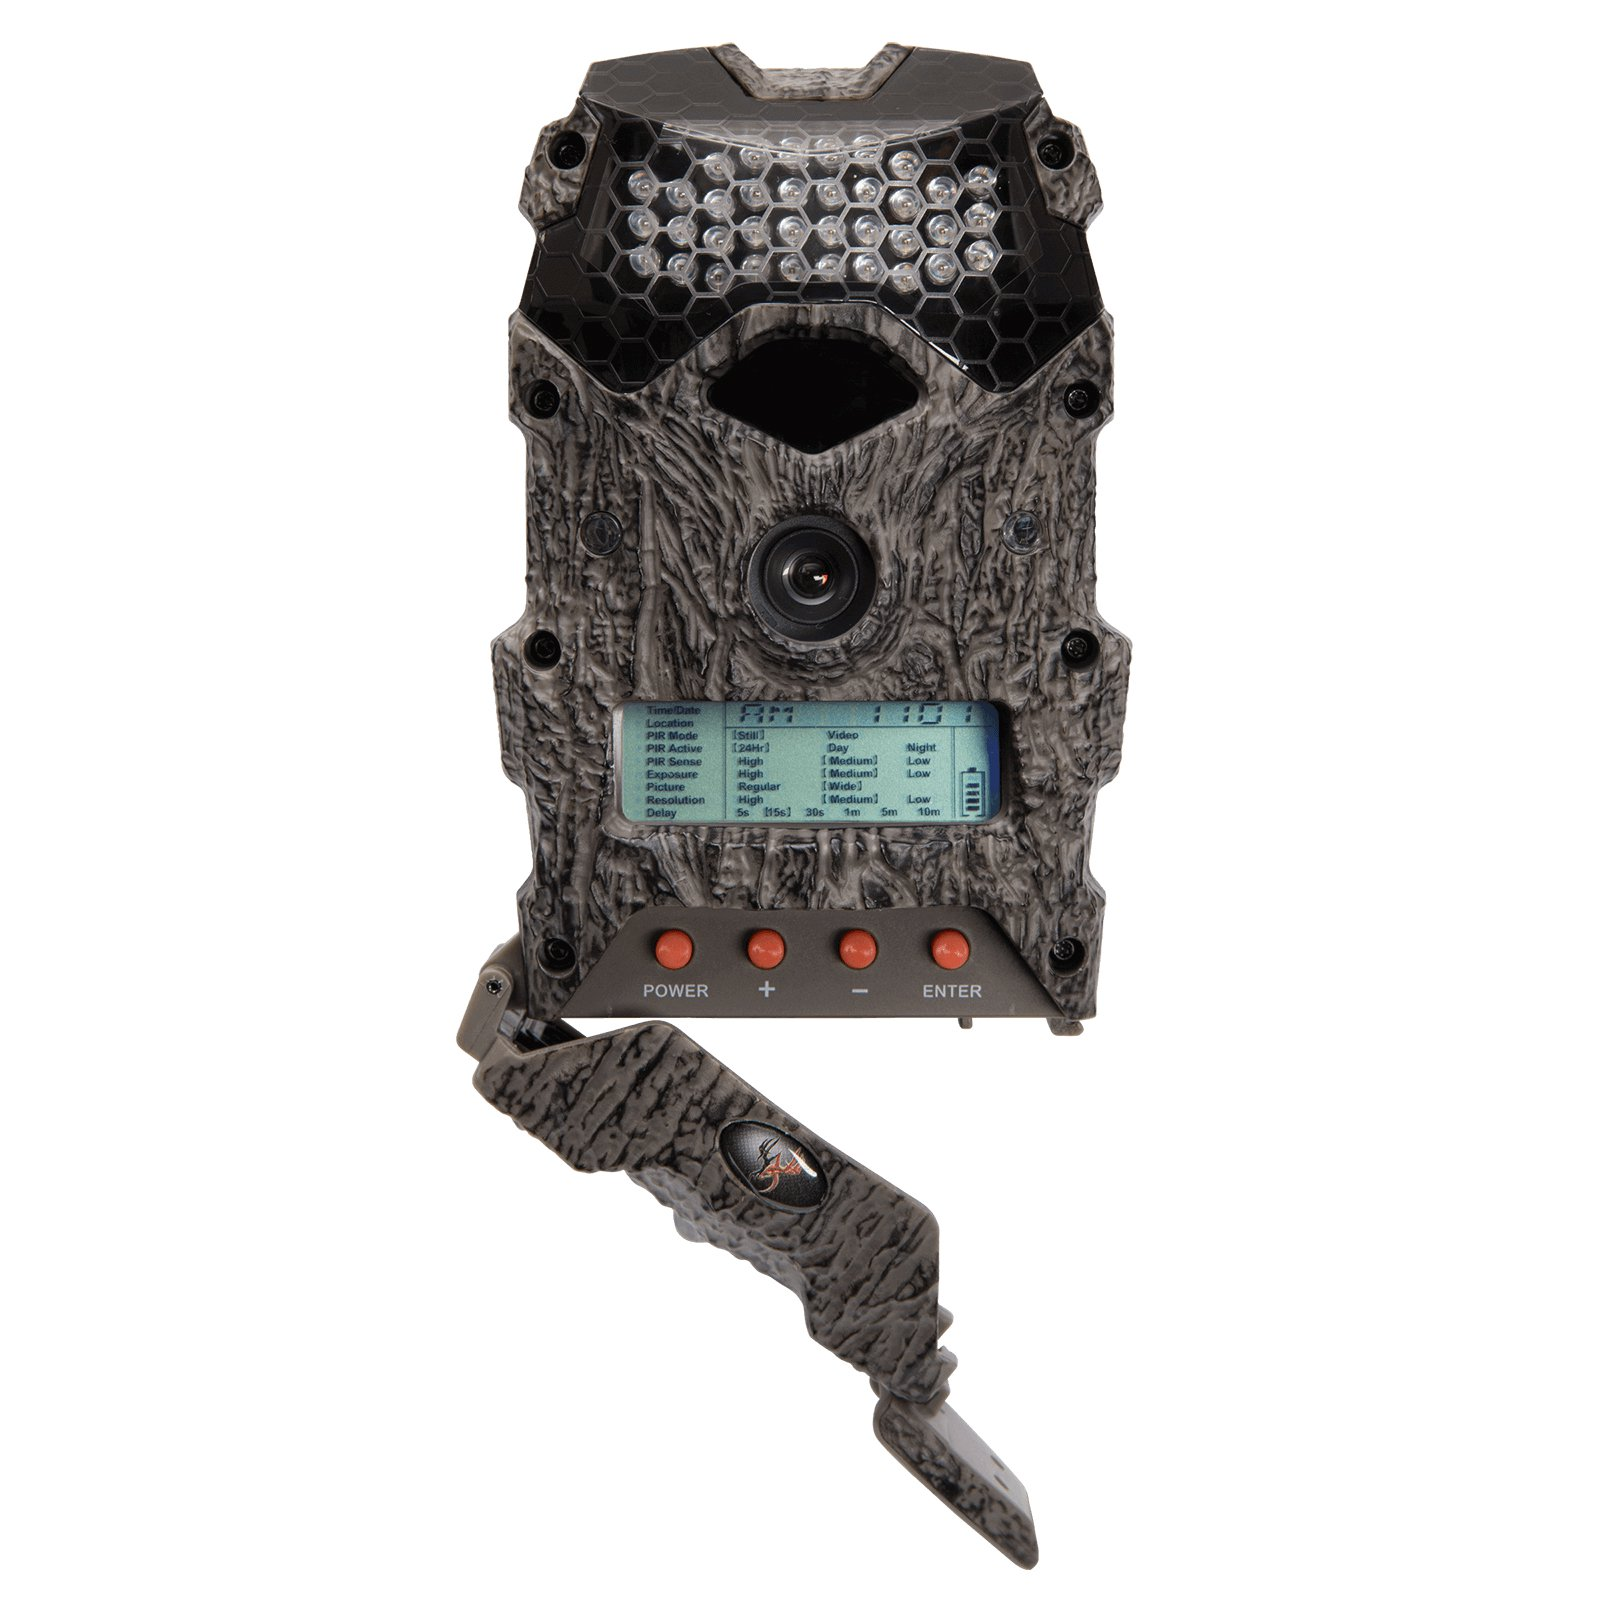 Wildgame Innovations Mirage 16 16MP 720p Video Hunting Game Trail Camera, Camo - image 1 of 5